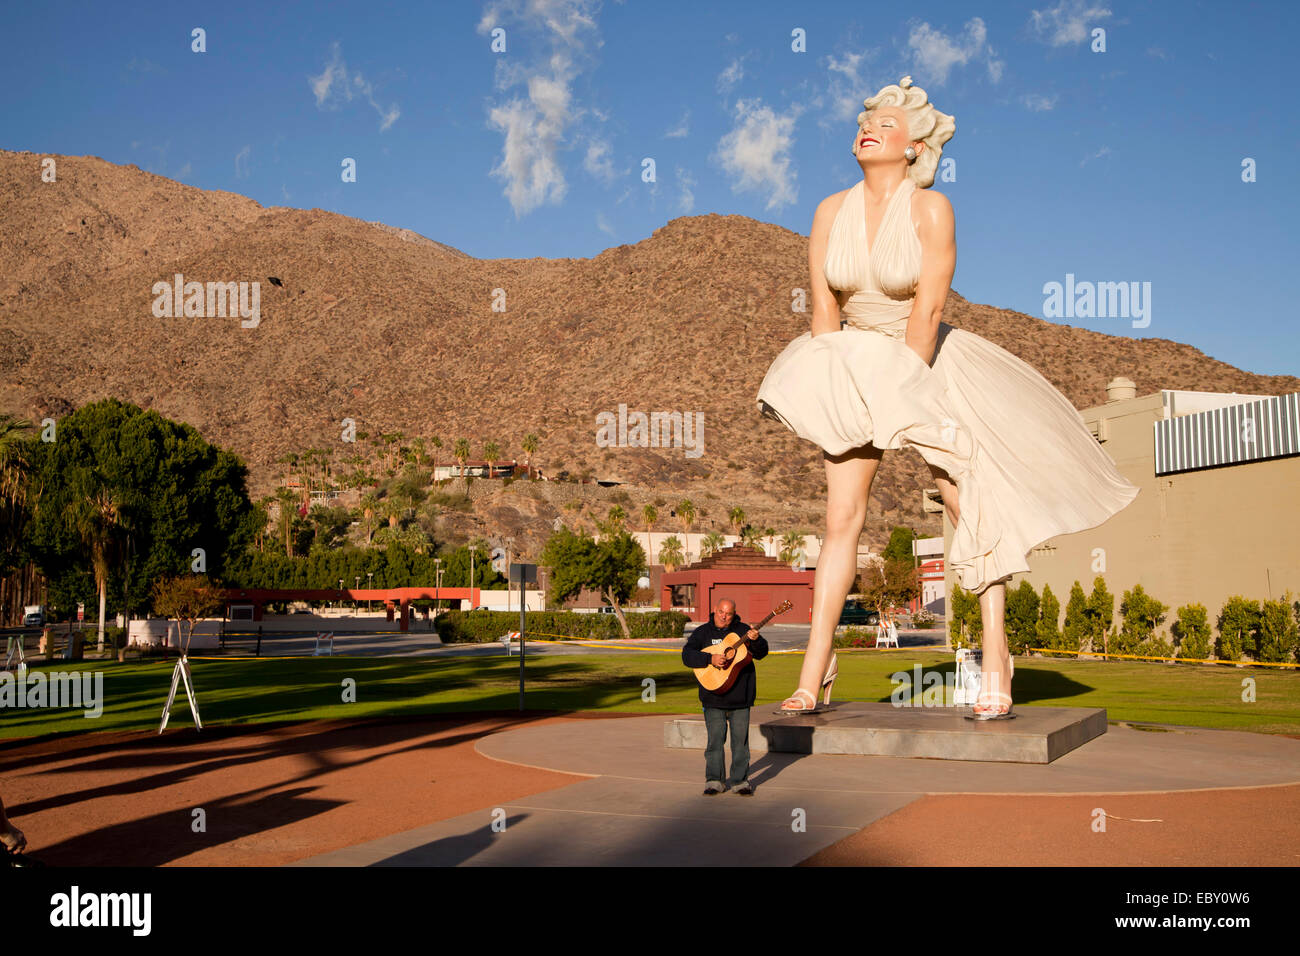 Nearly eight-metre tall Marilyn Monroe sculpture 'Forever Marilyn' by the American artist Seward Johnson, - Stock Image